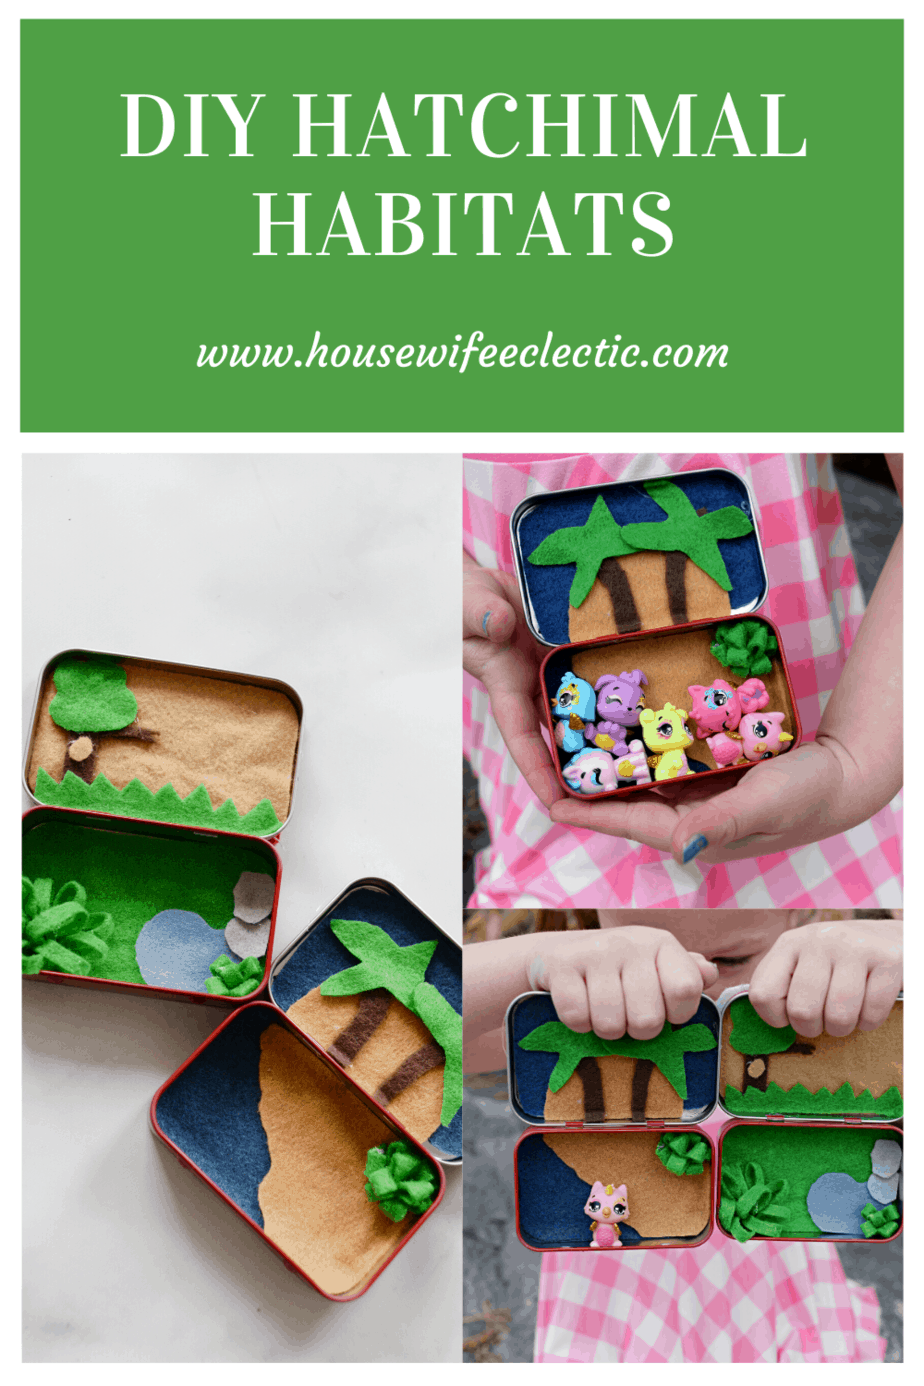 Housewife Eclectic: DIY Hatchimal Habitats